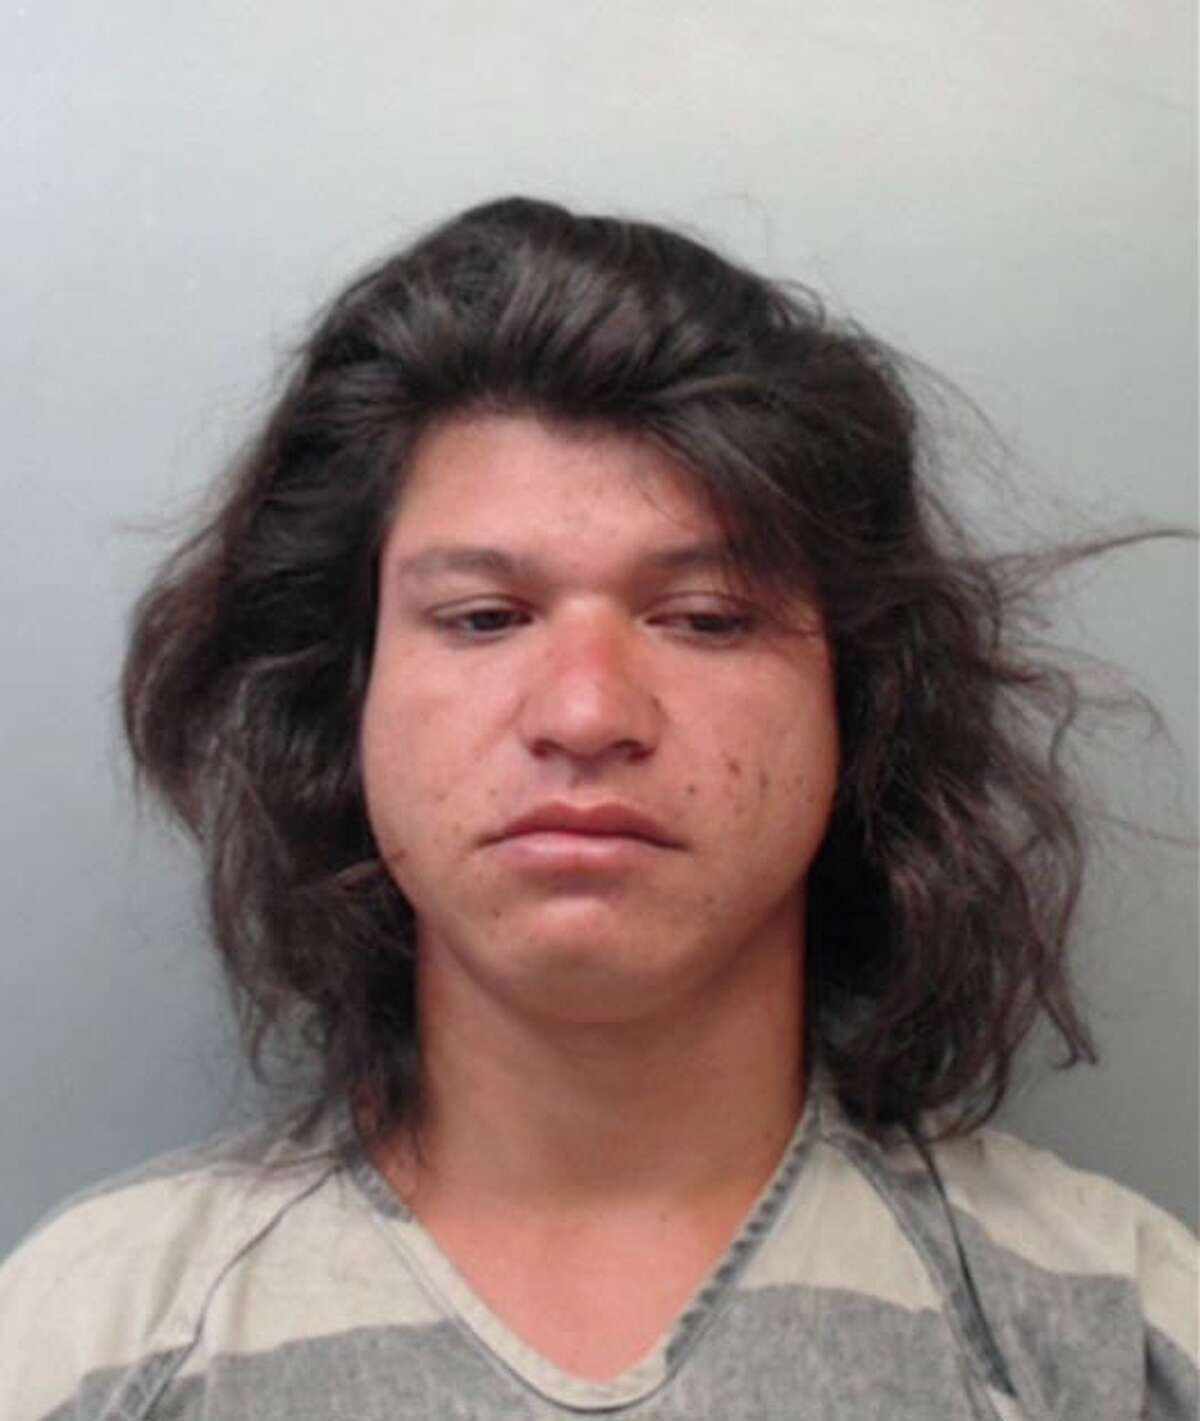 Jose Flores Renteria, 27, was charged with public lewdness.